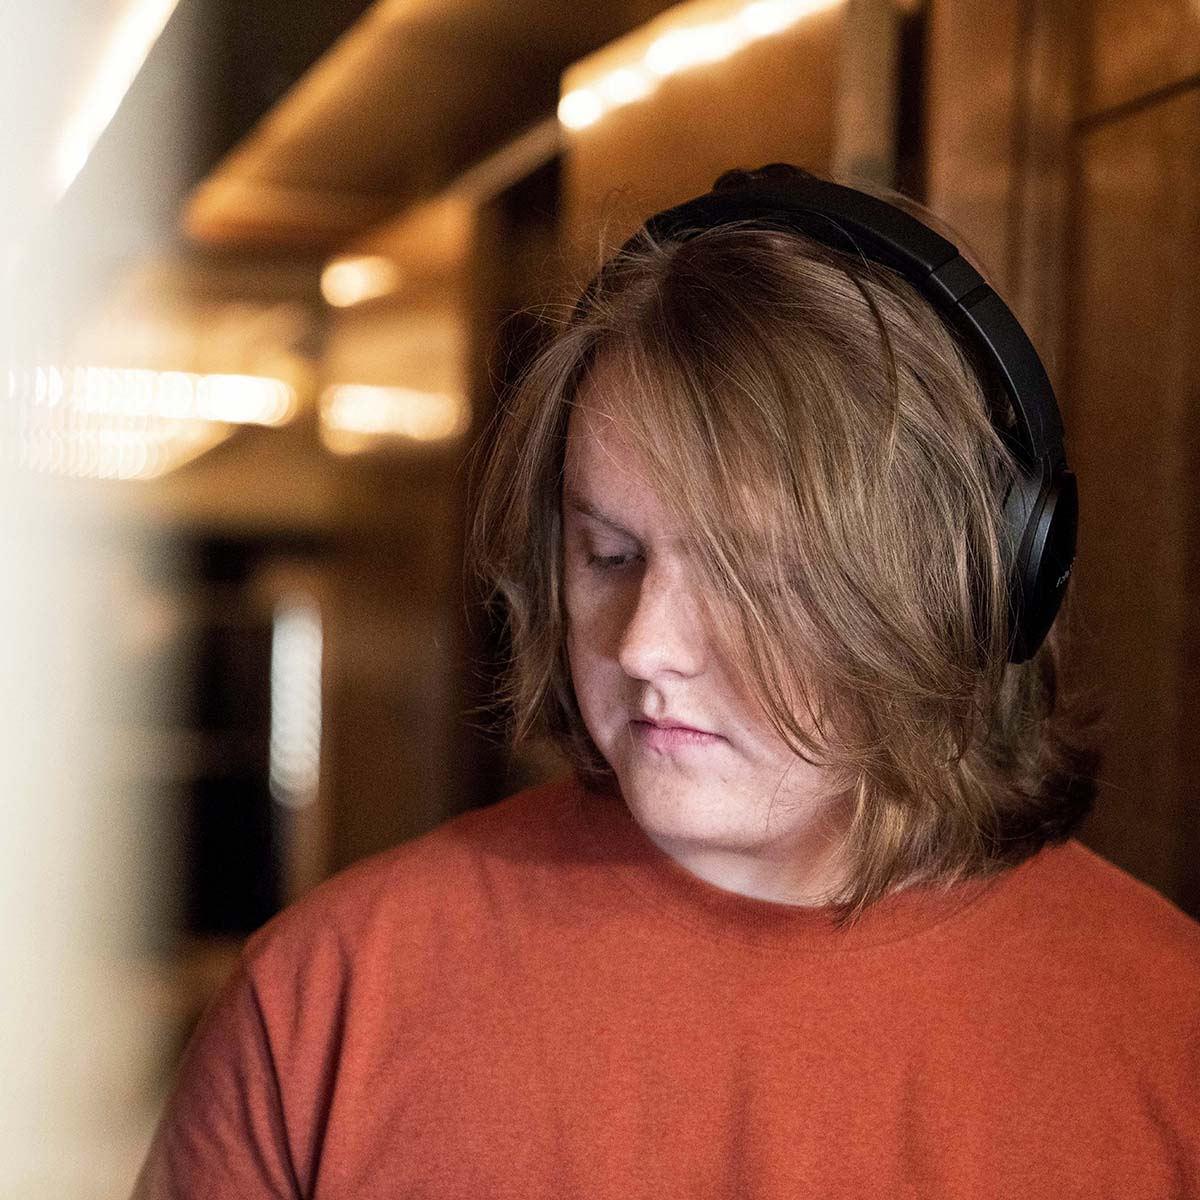 This is not a drill! @LewisCapaldi's debut album 'Divinely Uninspired to a Hellish Extent' is finally here. Click to listen: https://bose.life/2VwhXa3